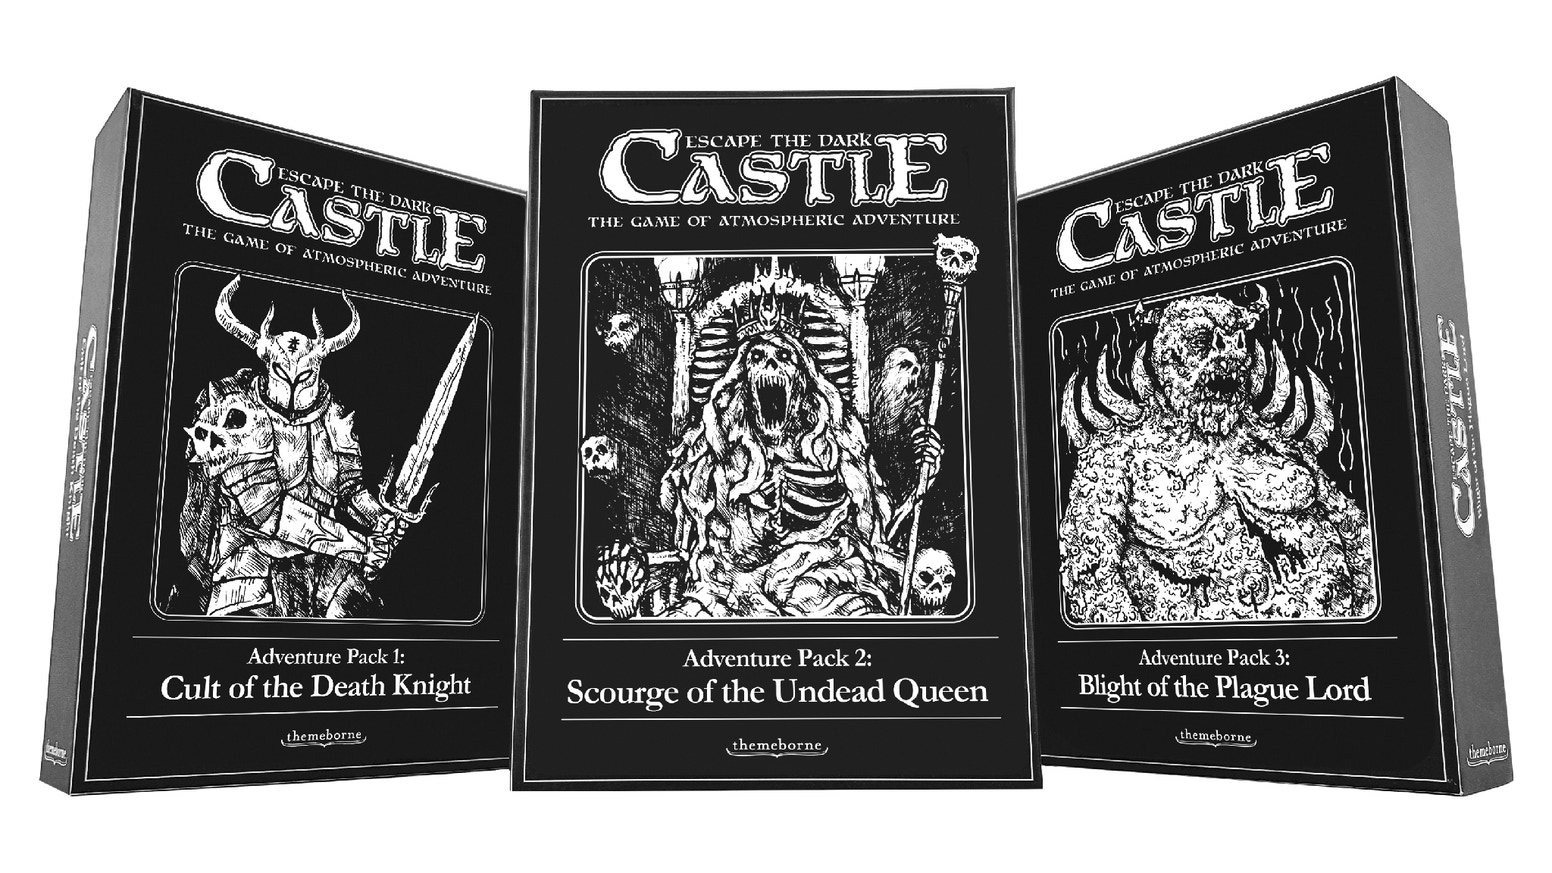 Three new expansions for Escape the Dark Castle, and a second chance to get the original game.